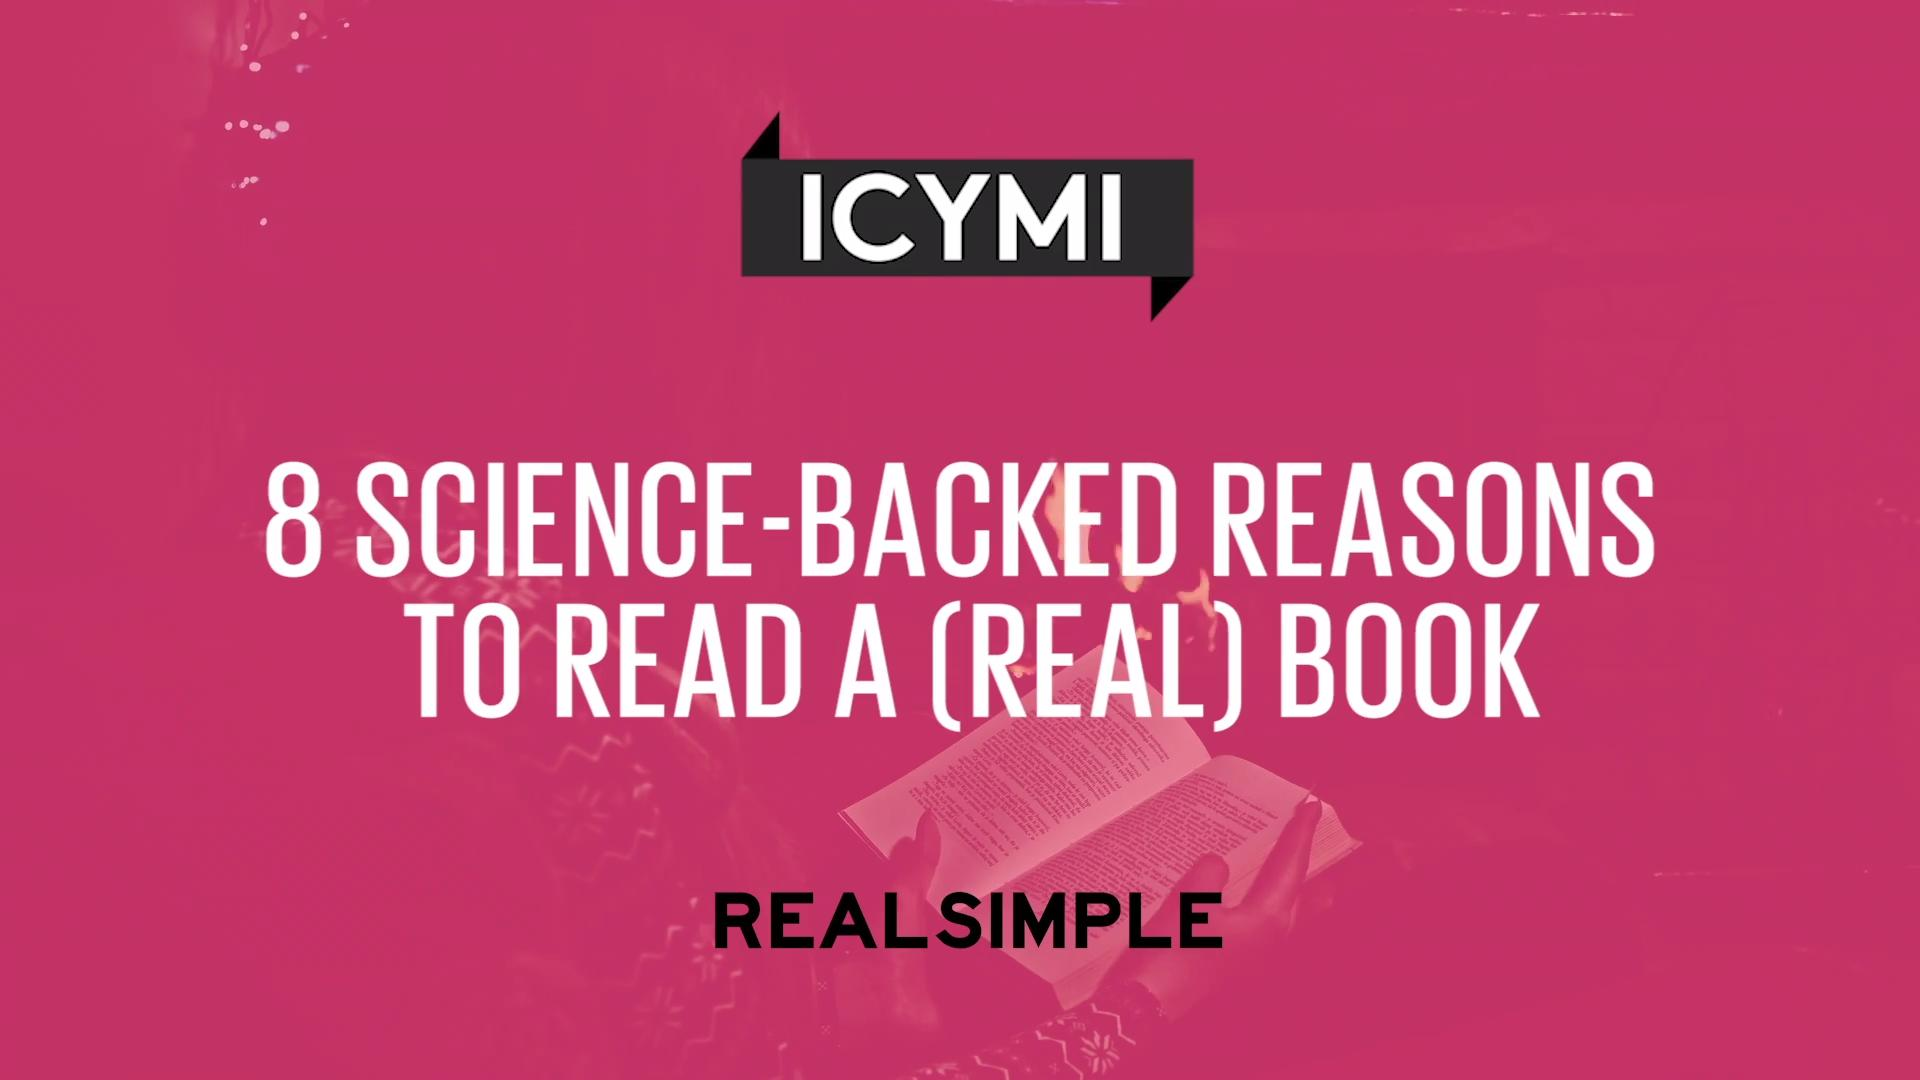 8 Science-Backed Benefits of Reading a (Real) Book | Real Simple